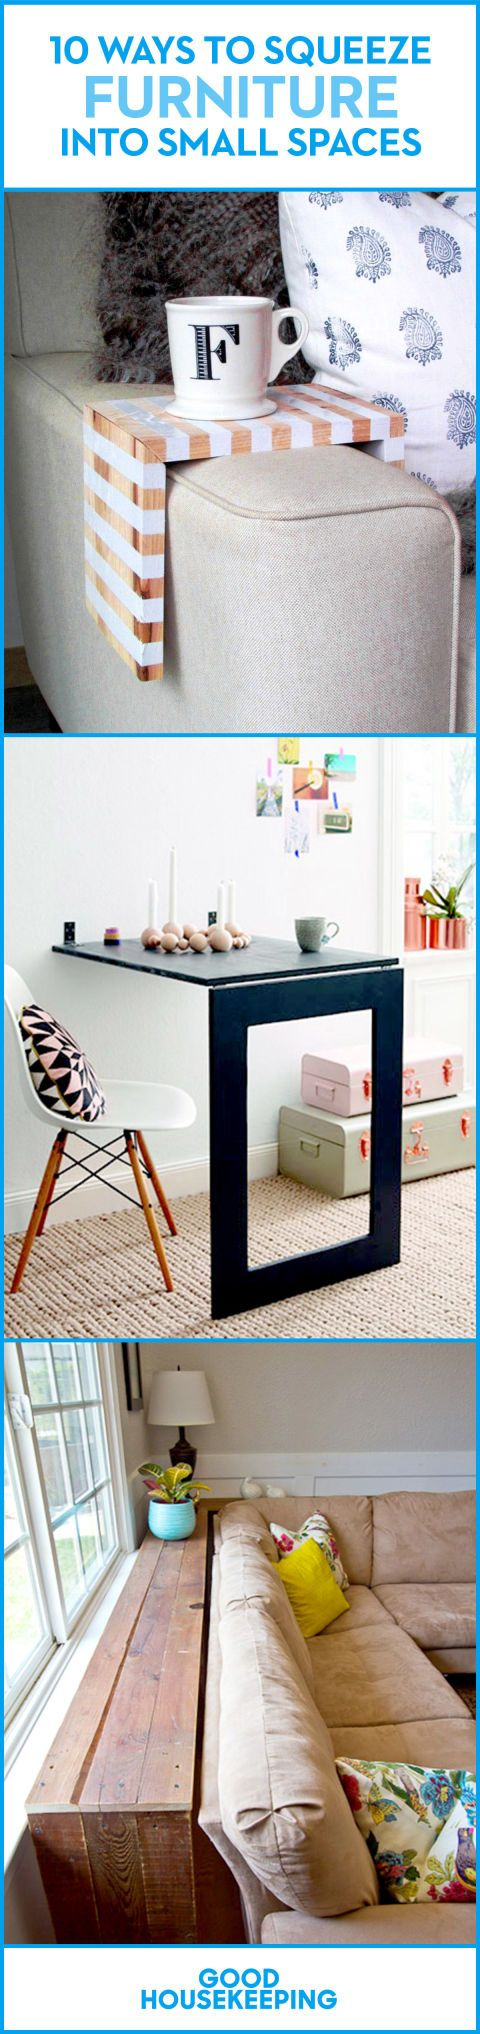 furniture small spaces. 10 ways to squeeze furniture into small spaces